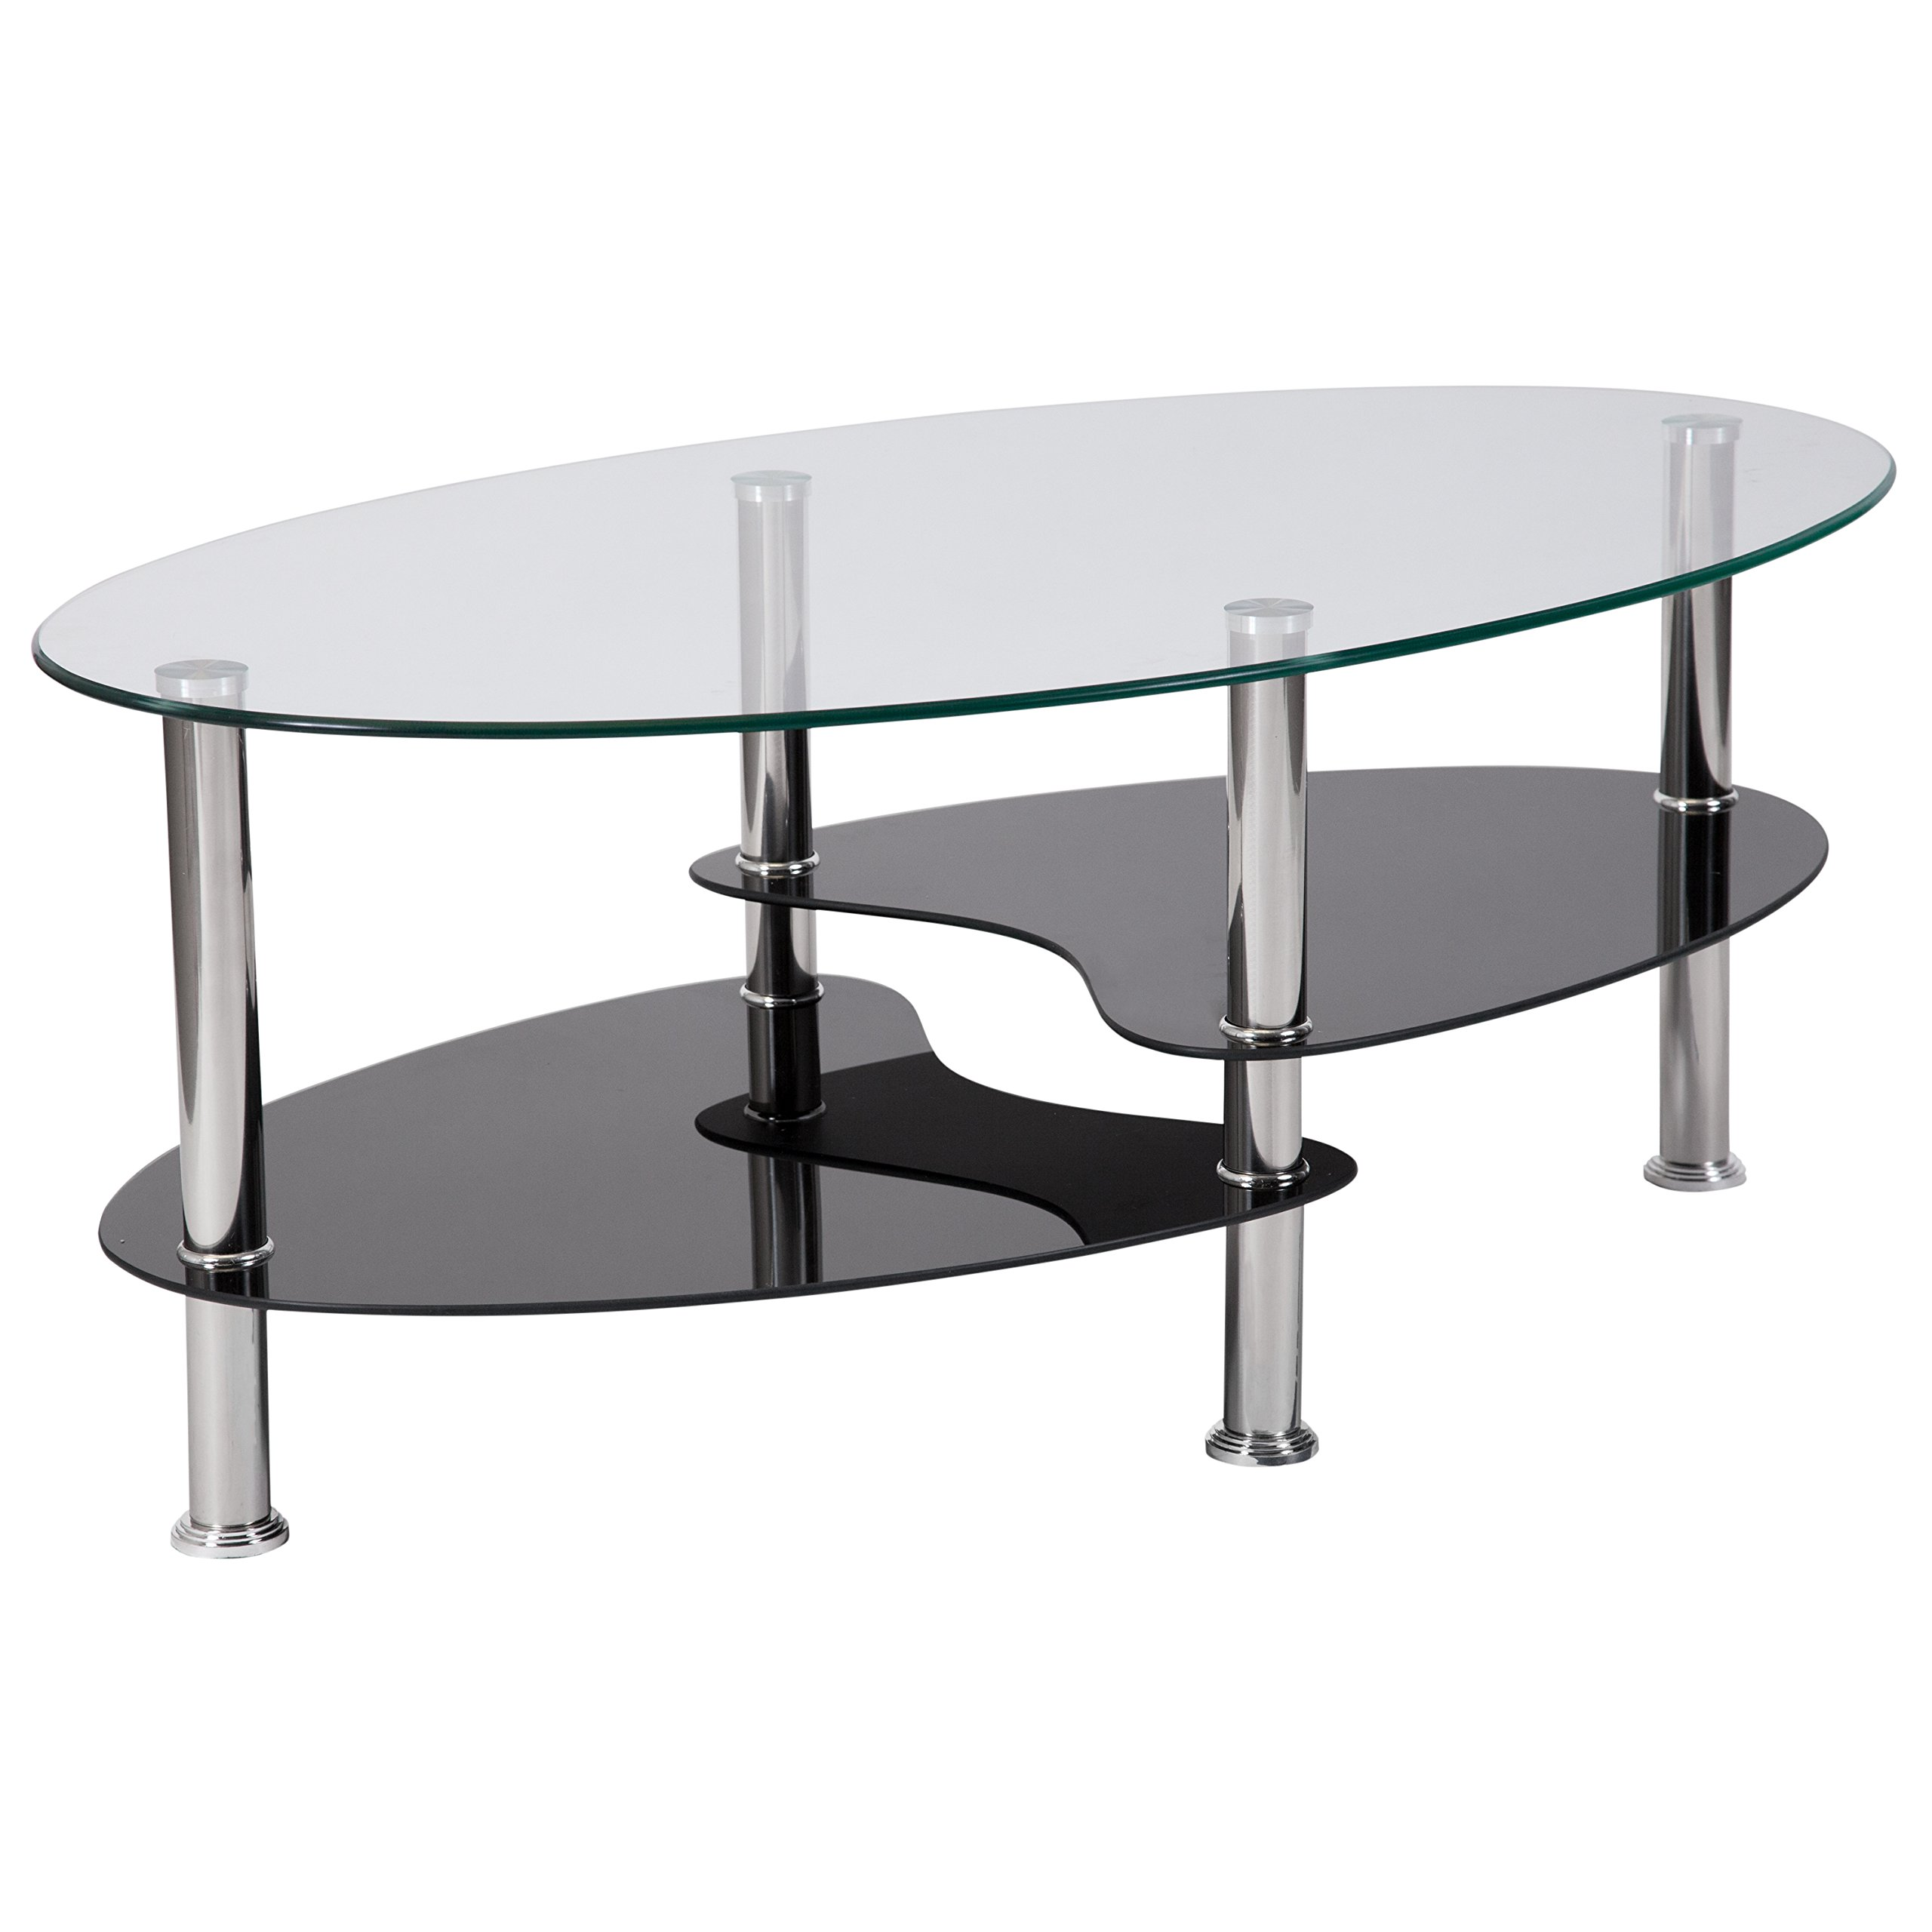 Flash Furniture Hampden Glass Coffee Table with Black Glass Shelves and Stainless Steel Legs by Flash Furniture